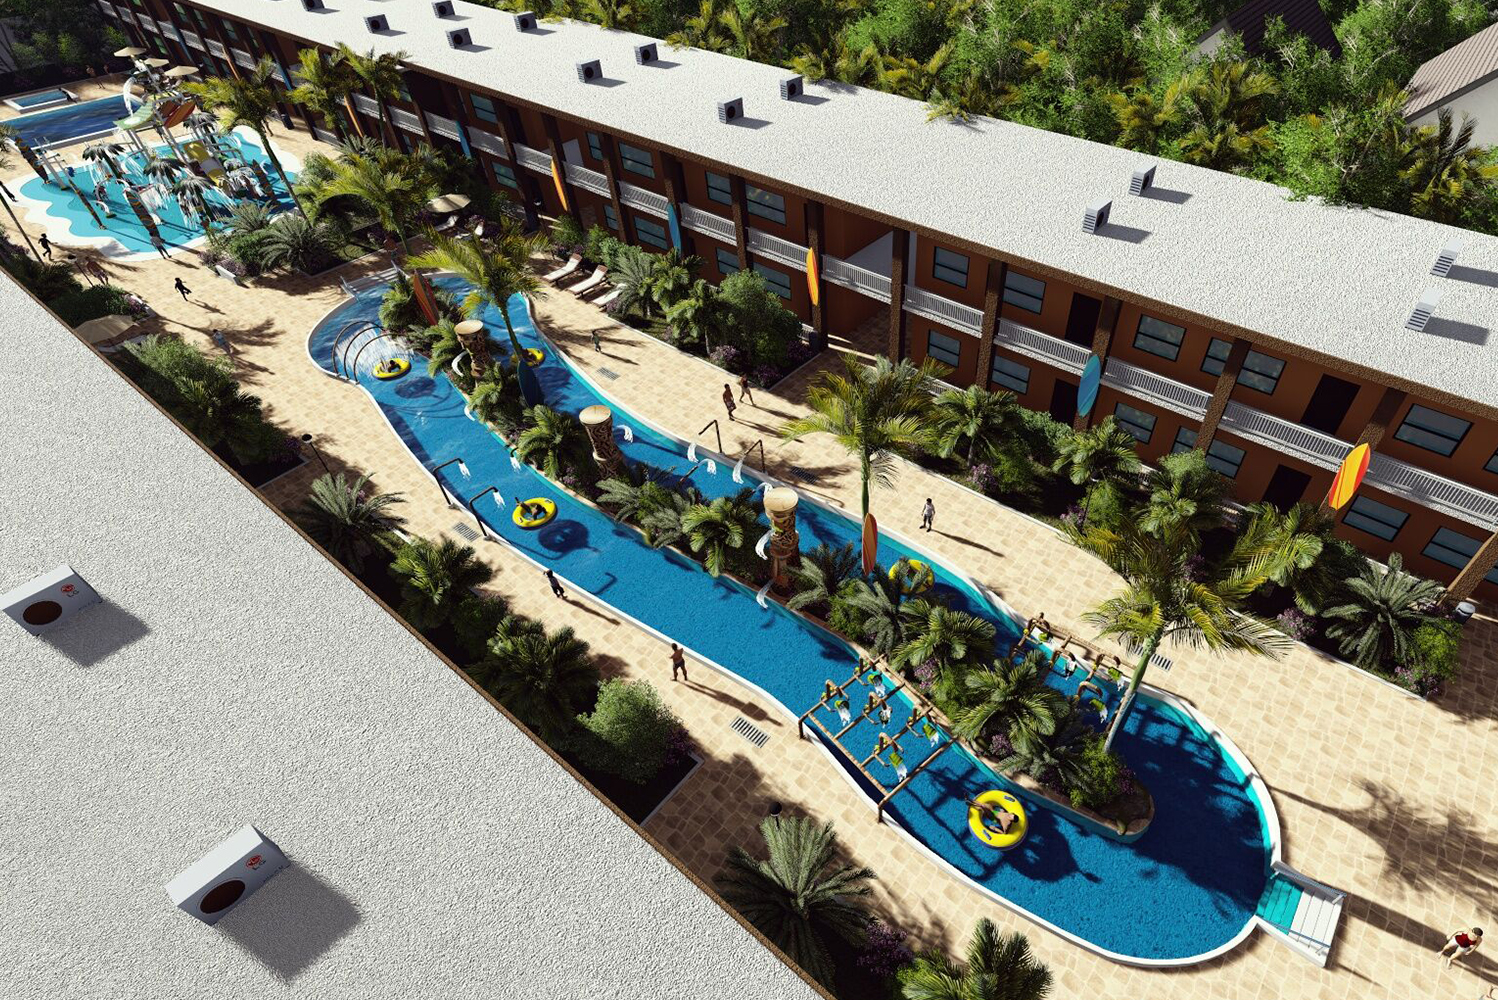 The new centerpiece of the beachfront resort will be complimentary guest access to a 75,000-gallon tropical-themed waterpark.